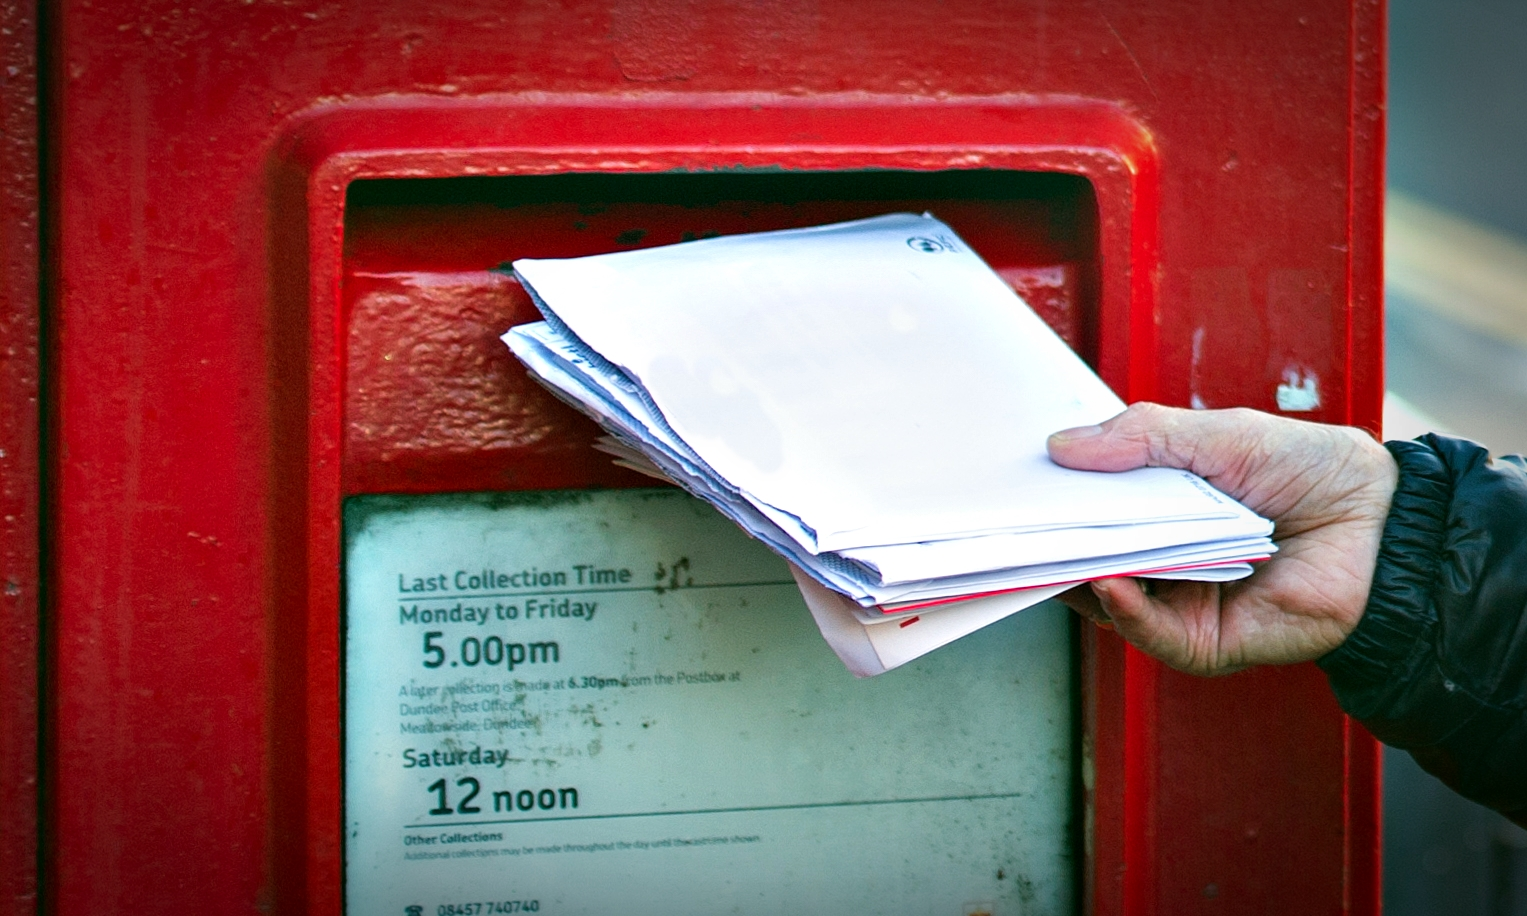 Clarity is being sought about the future of the Craigellachie Post Office branch.